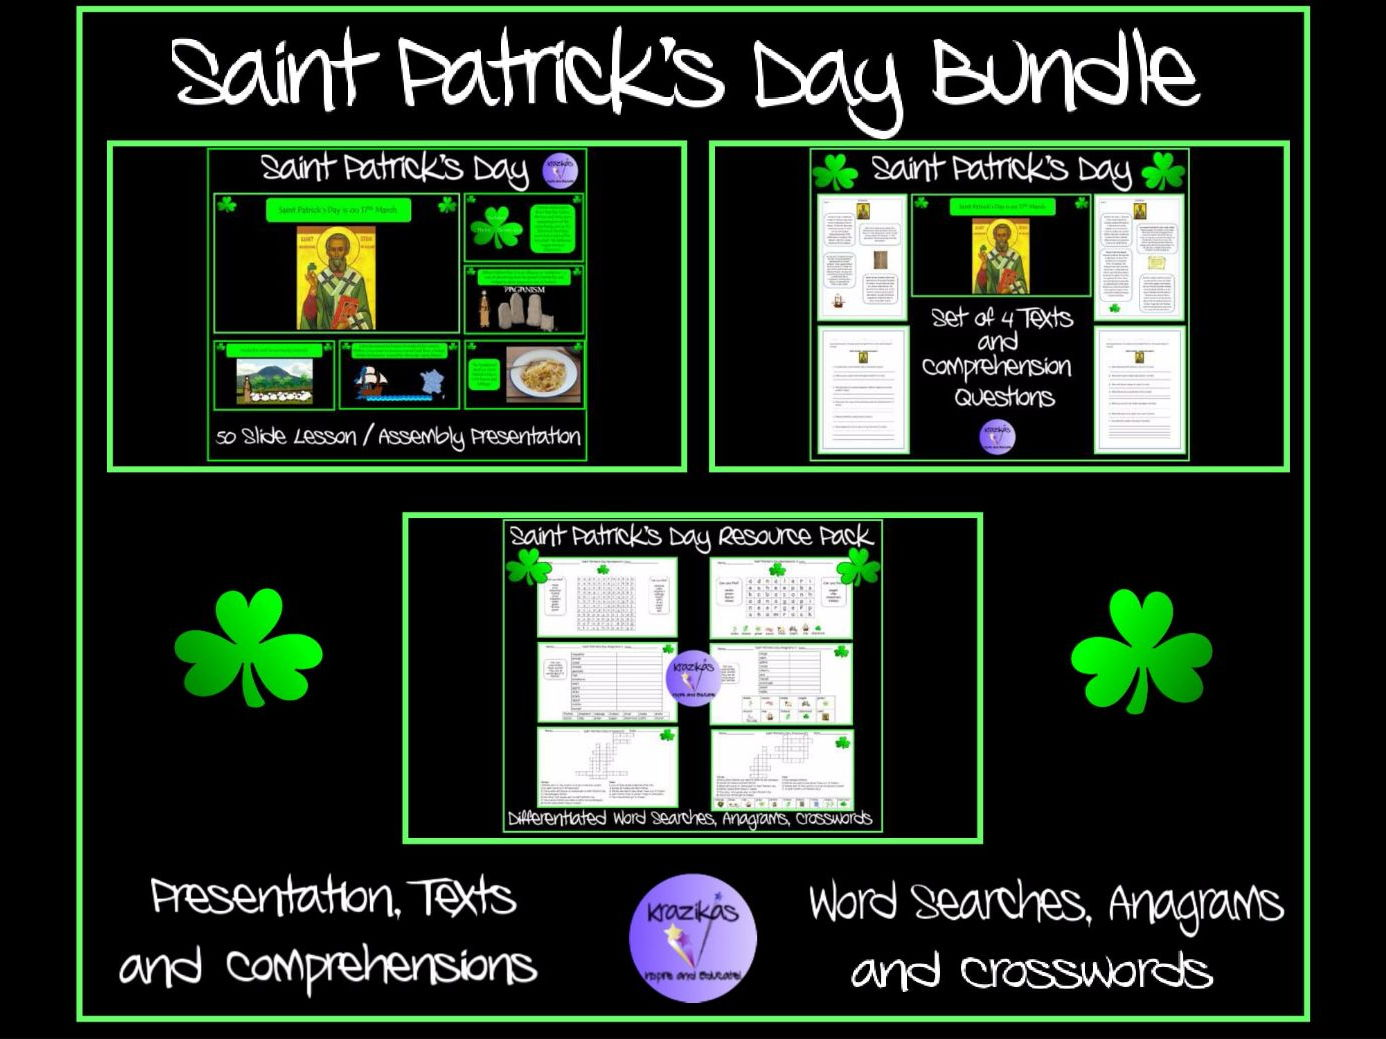 Saint Patrick's Day Bundle: Presentation, Texts and Comprehensions, Differentiated Word Searches, Anagrams and Crosswords